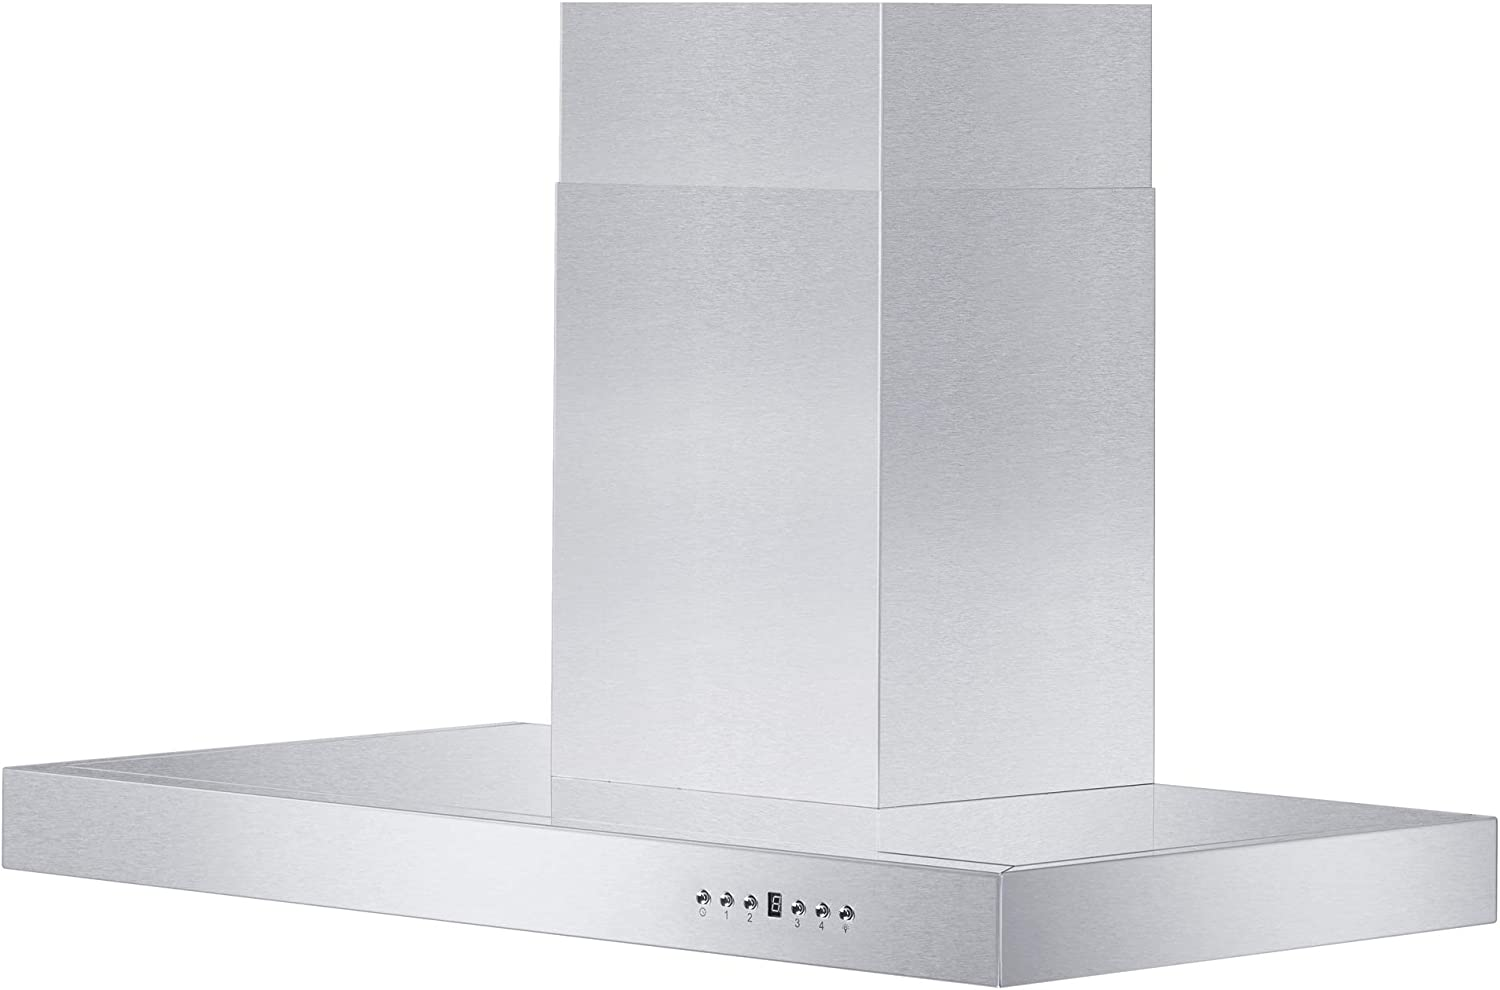 ZLINE 36 in. 400 CFM Wall Mount Range Hood in Stainless Steel (KE-36)